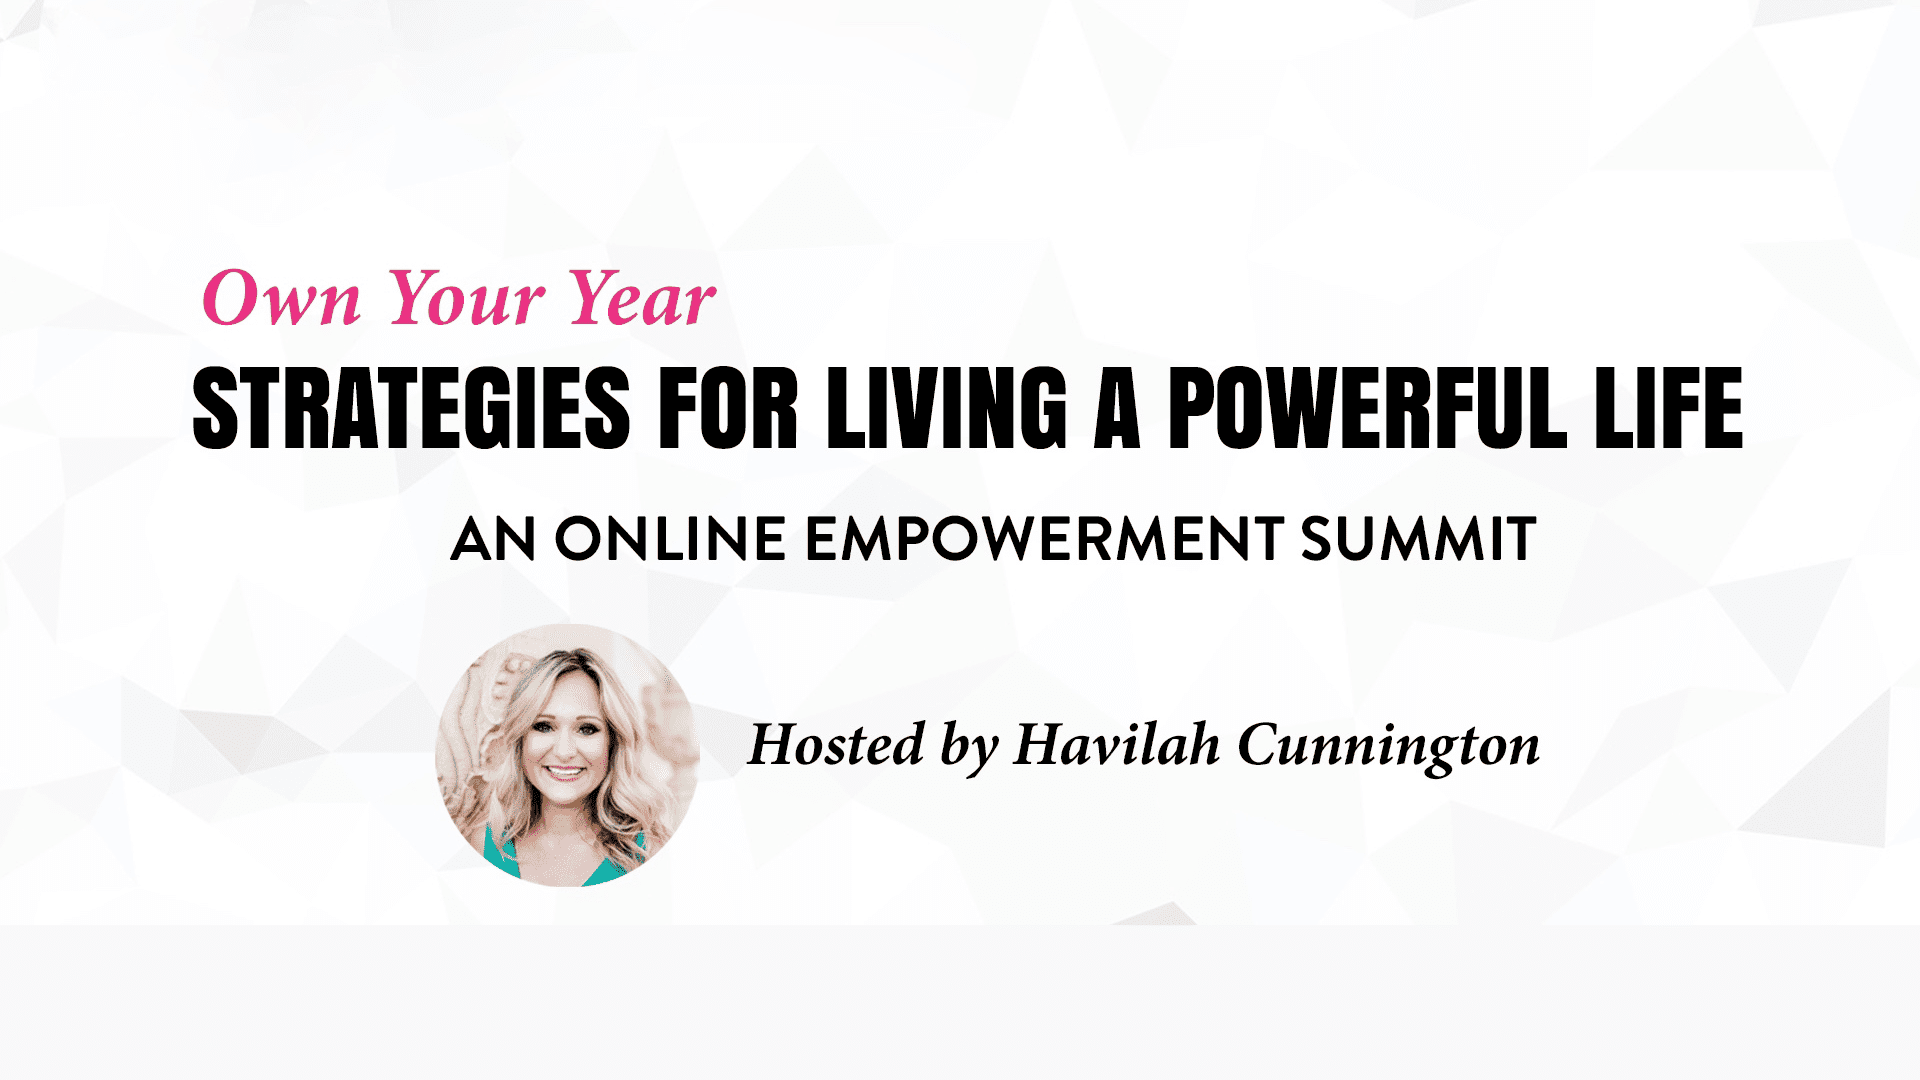 Own Your Year Summit